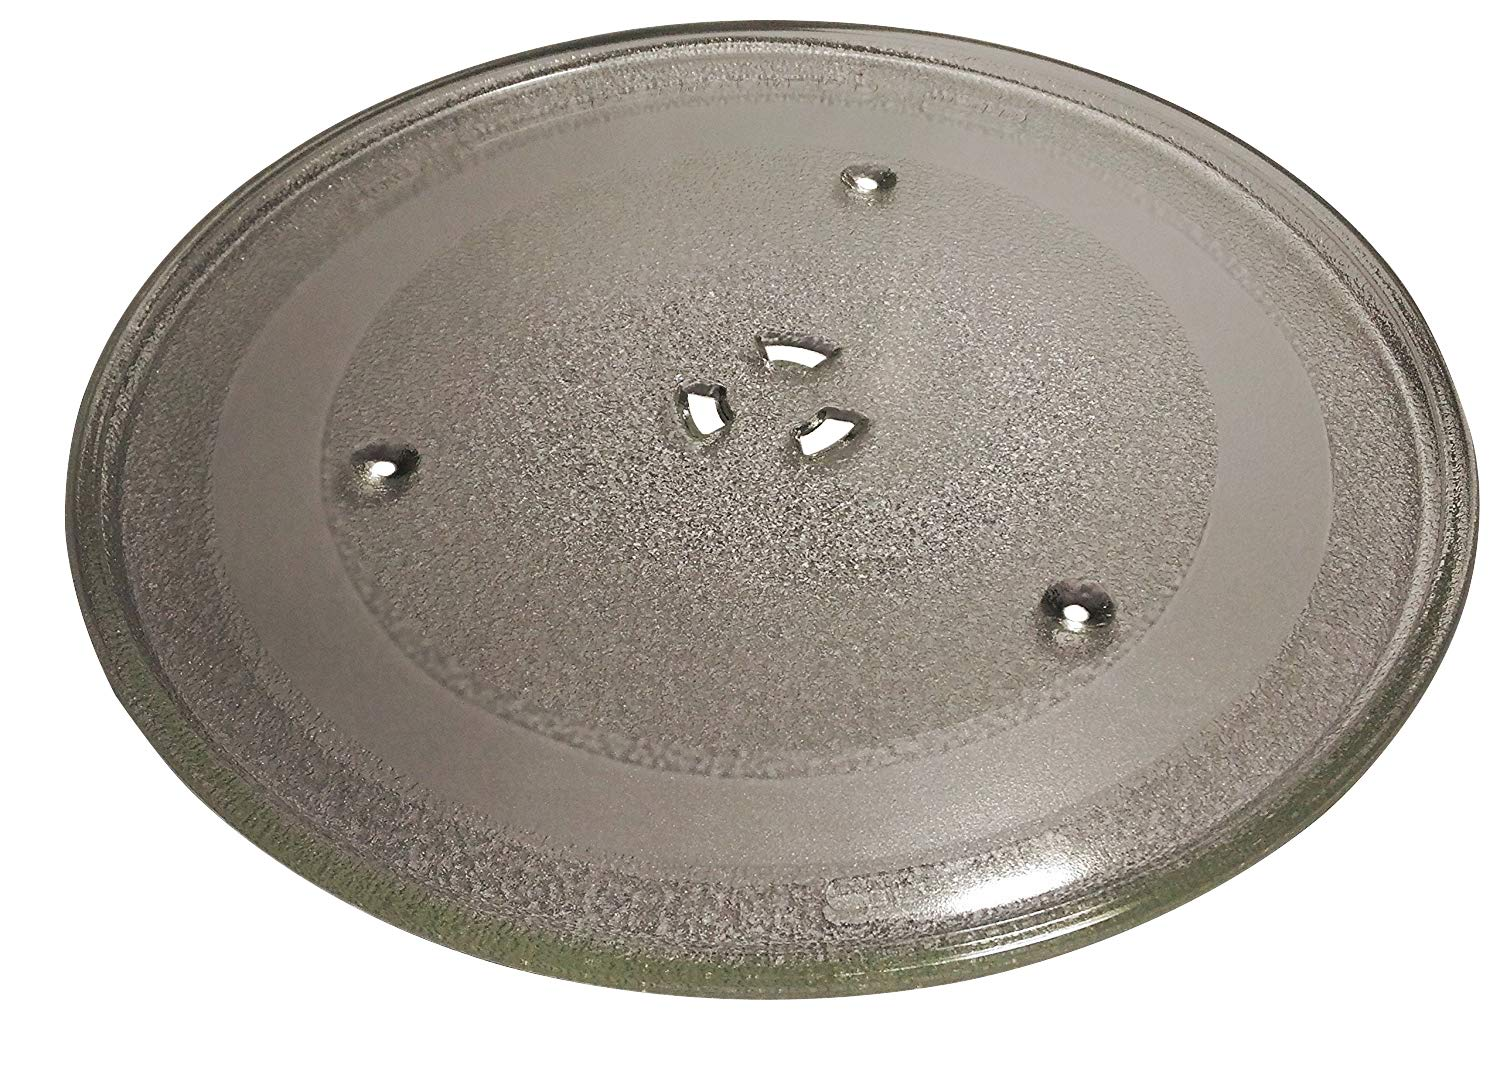 LG / Goldstar Microwave Glass Turntable Tray / Plate 12 3/4 Inch